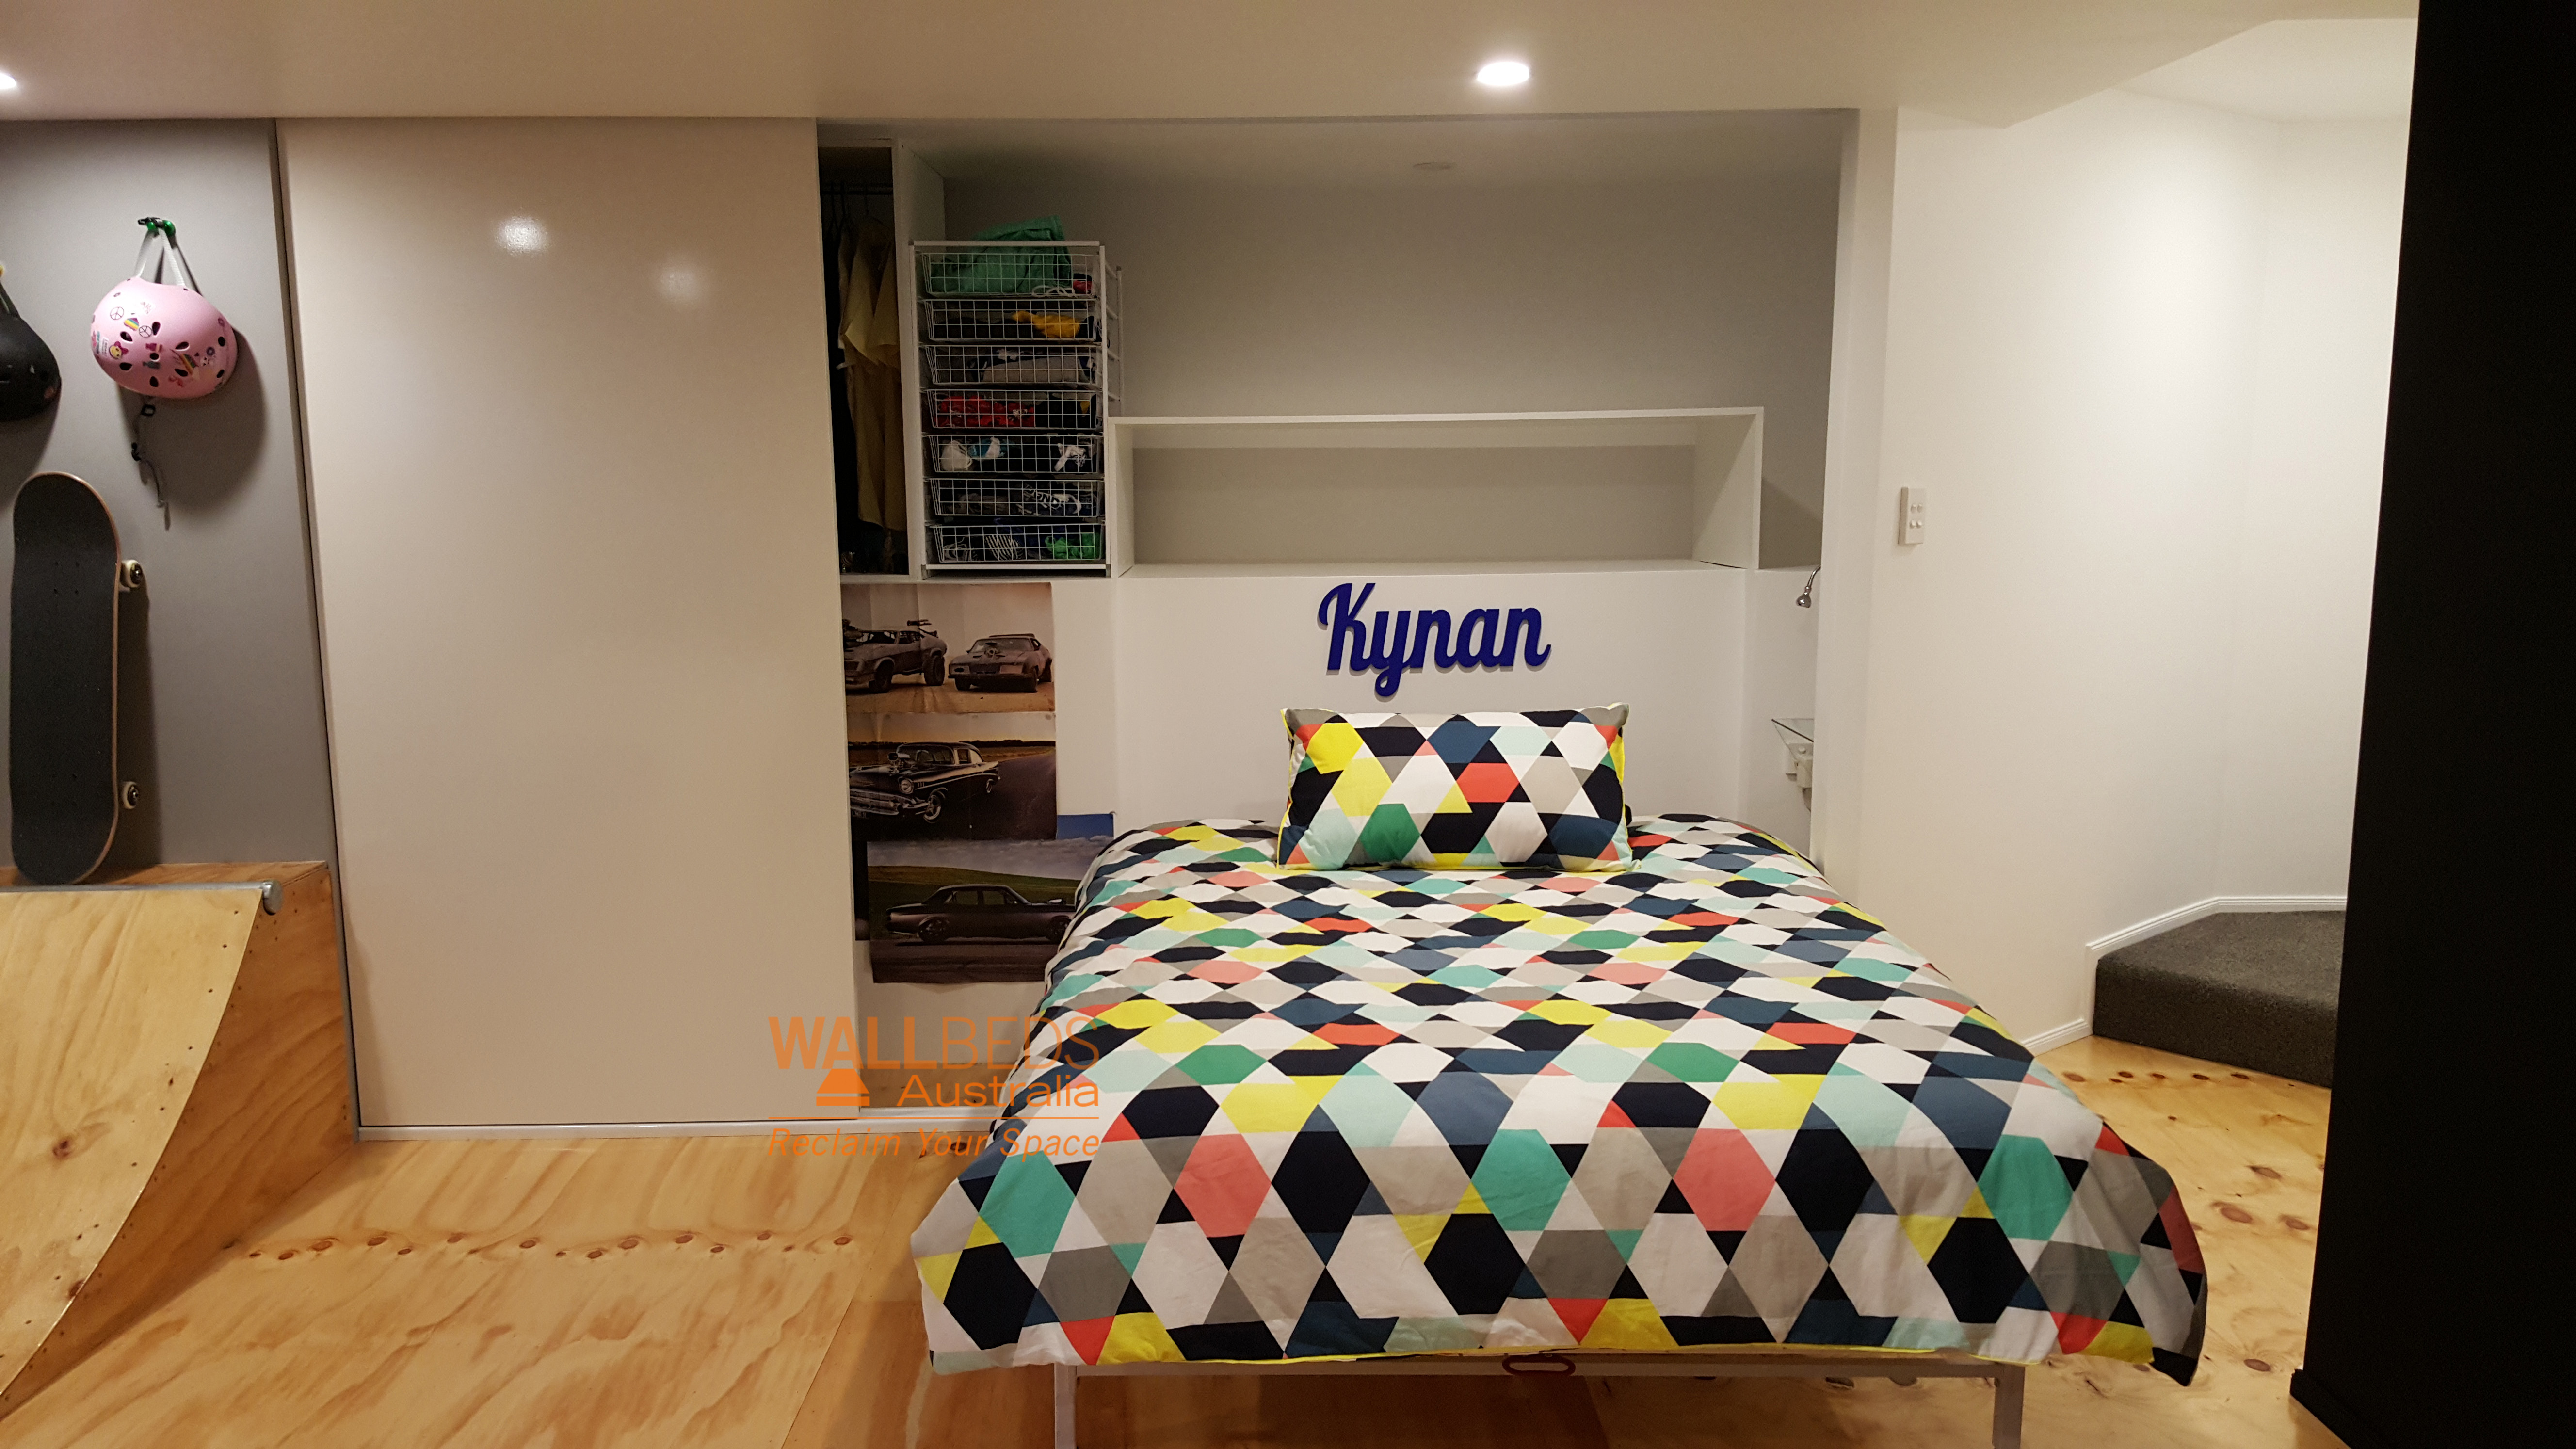 NeXt Bed in a closet - open